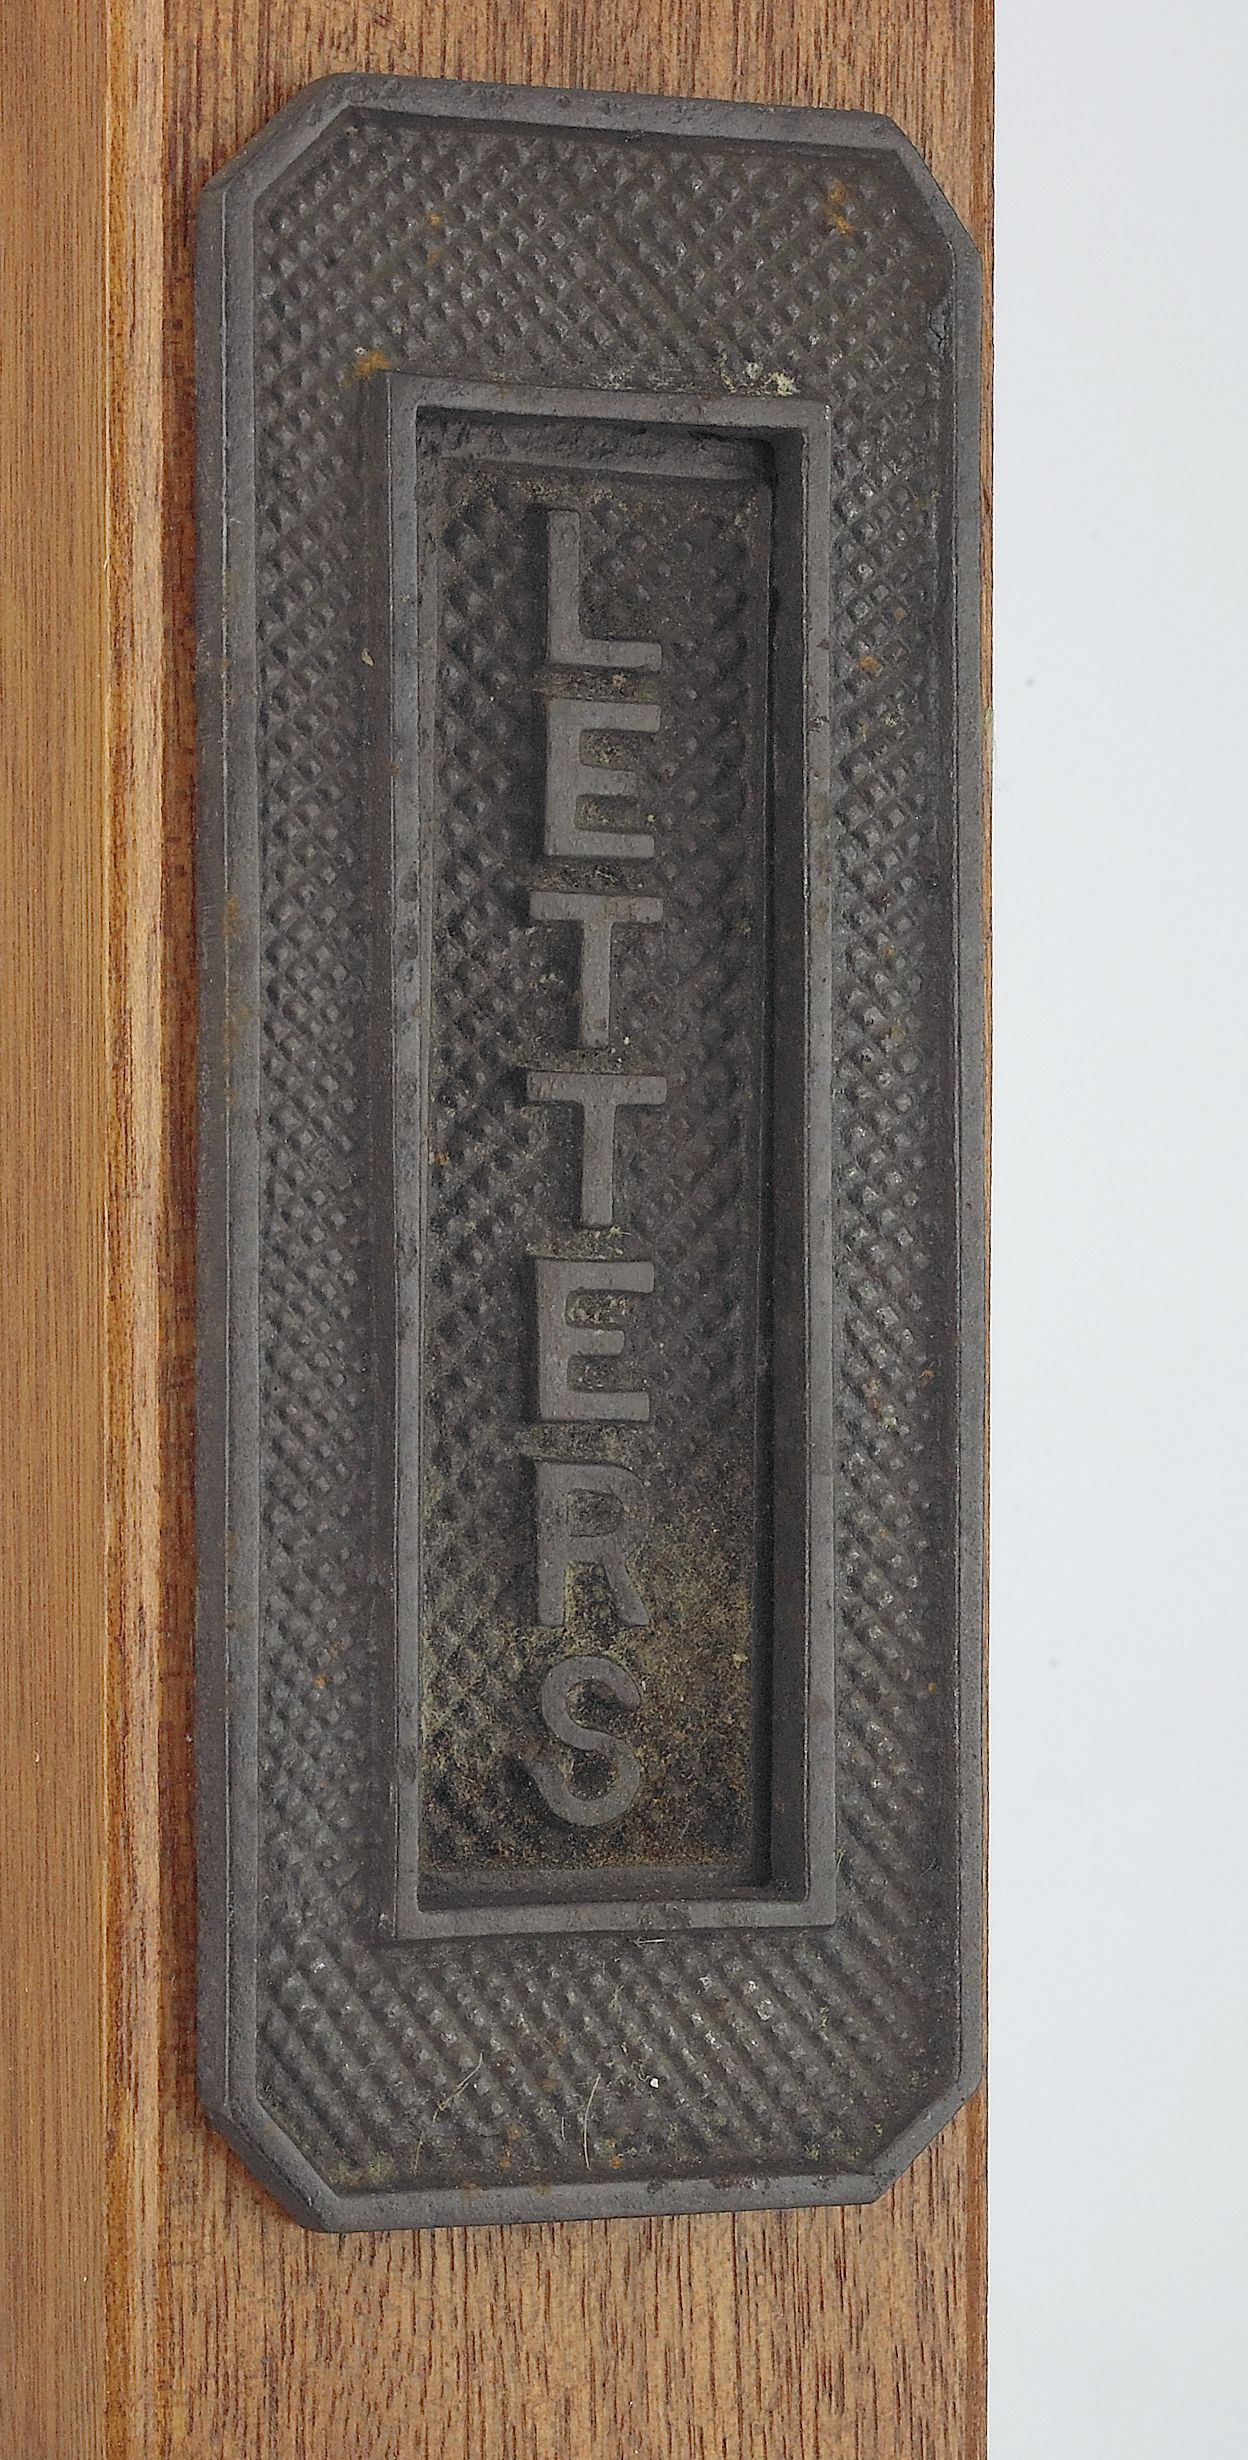 or if you prefer something simpler we have a lovely vertical cast iron letter plate